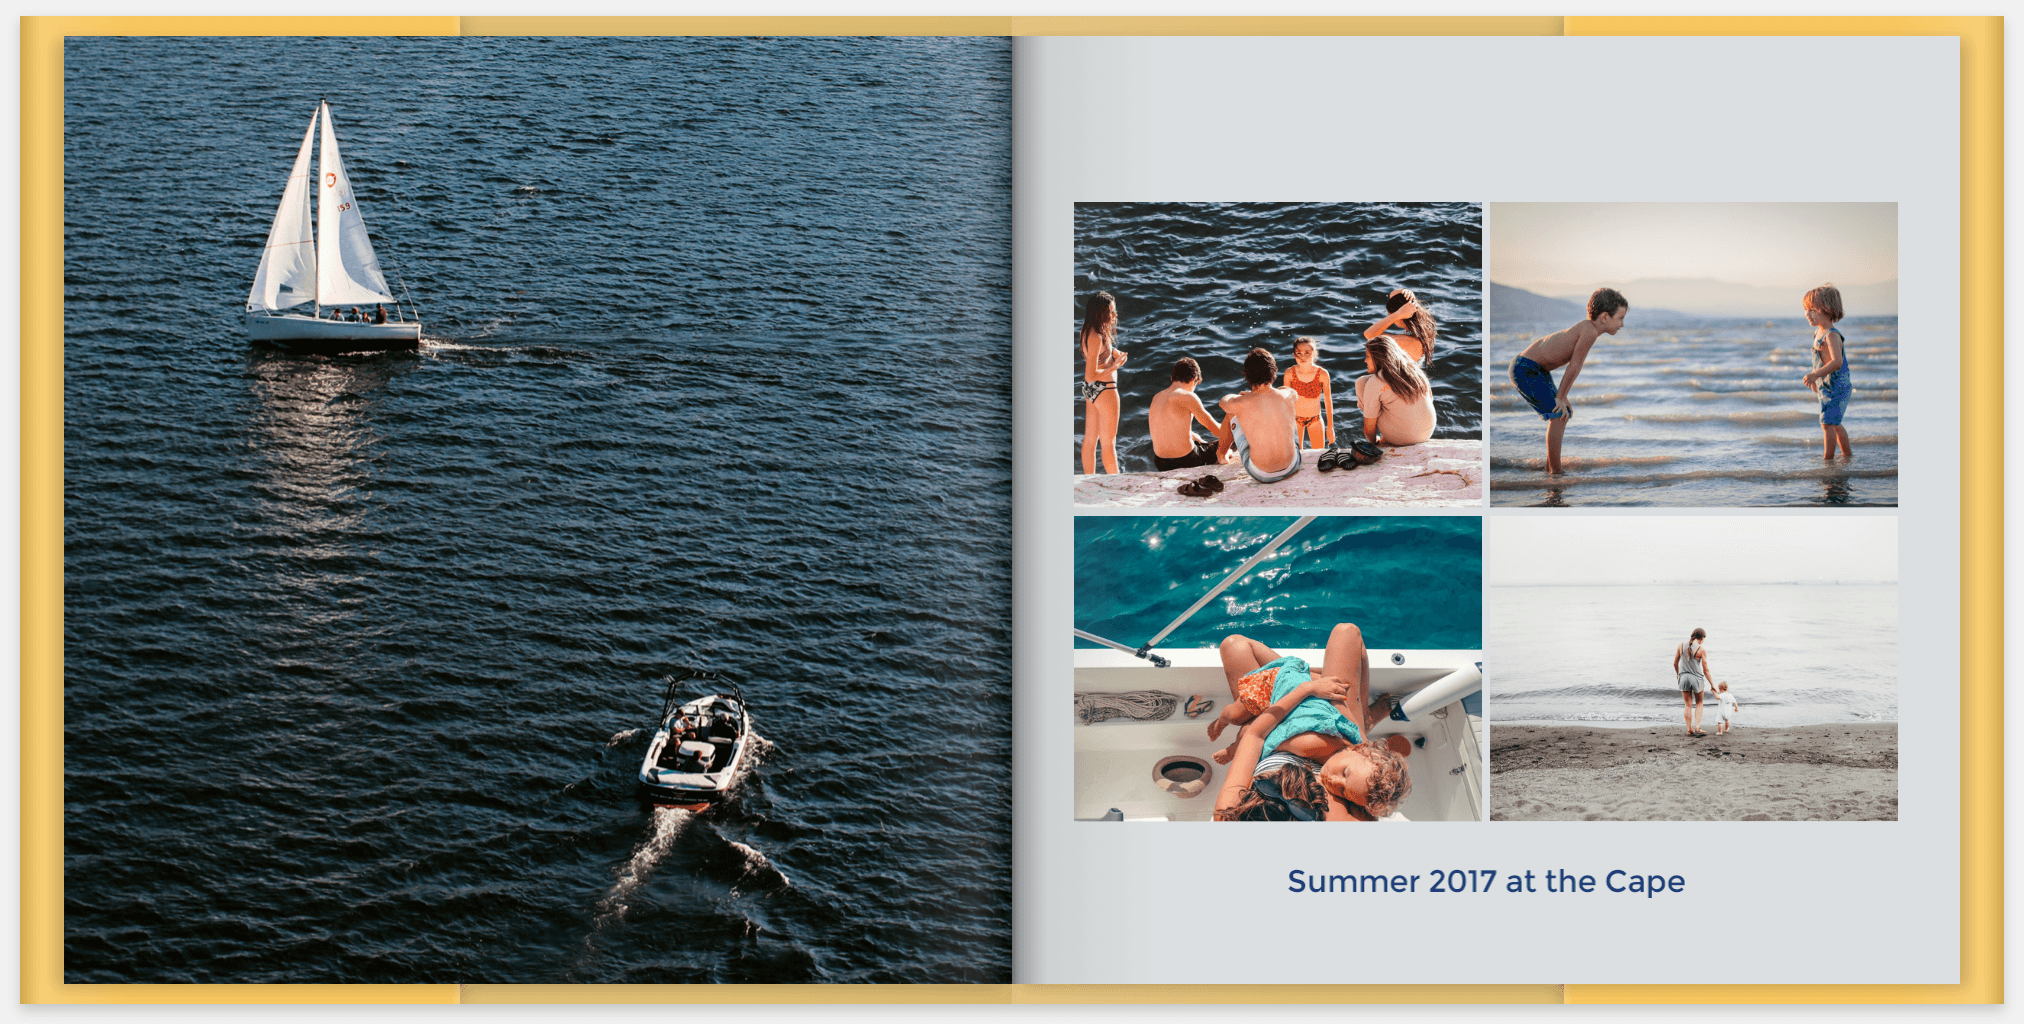 Chronicle past family trips by making a travel photo book for your mom